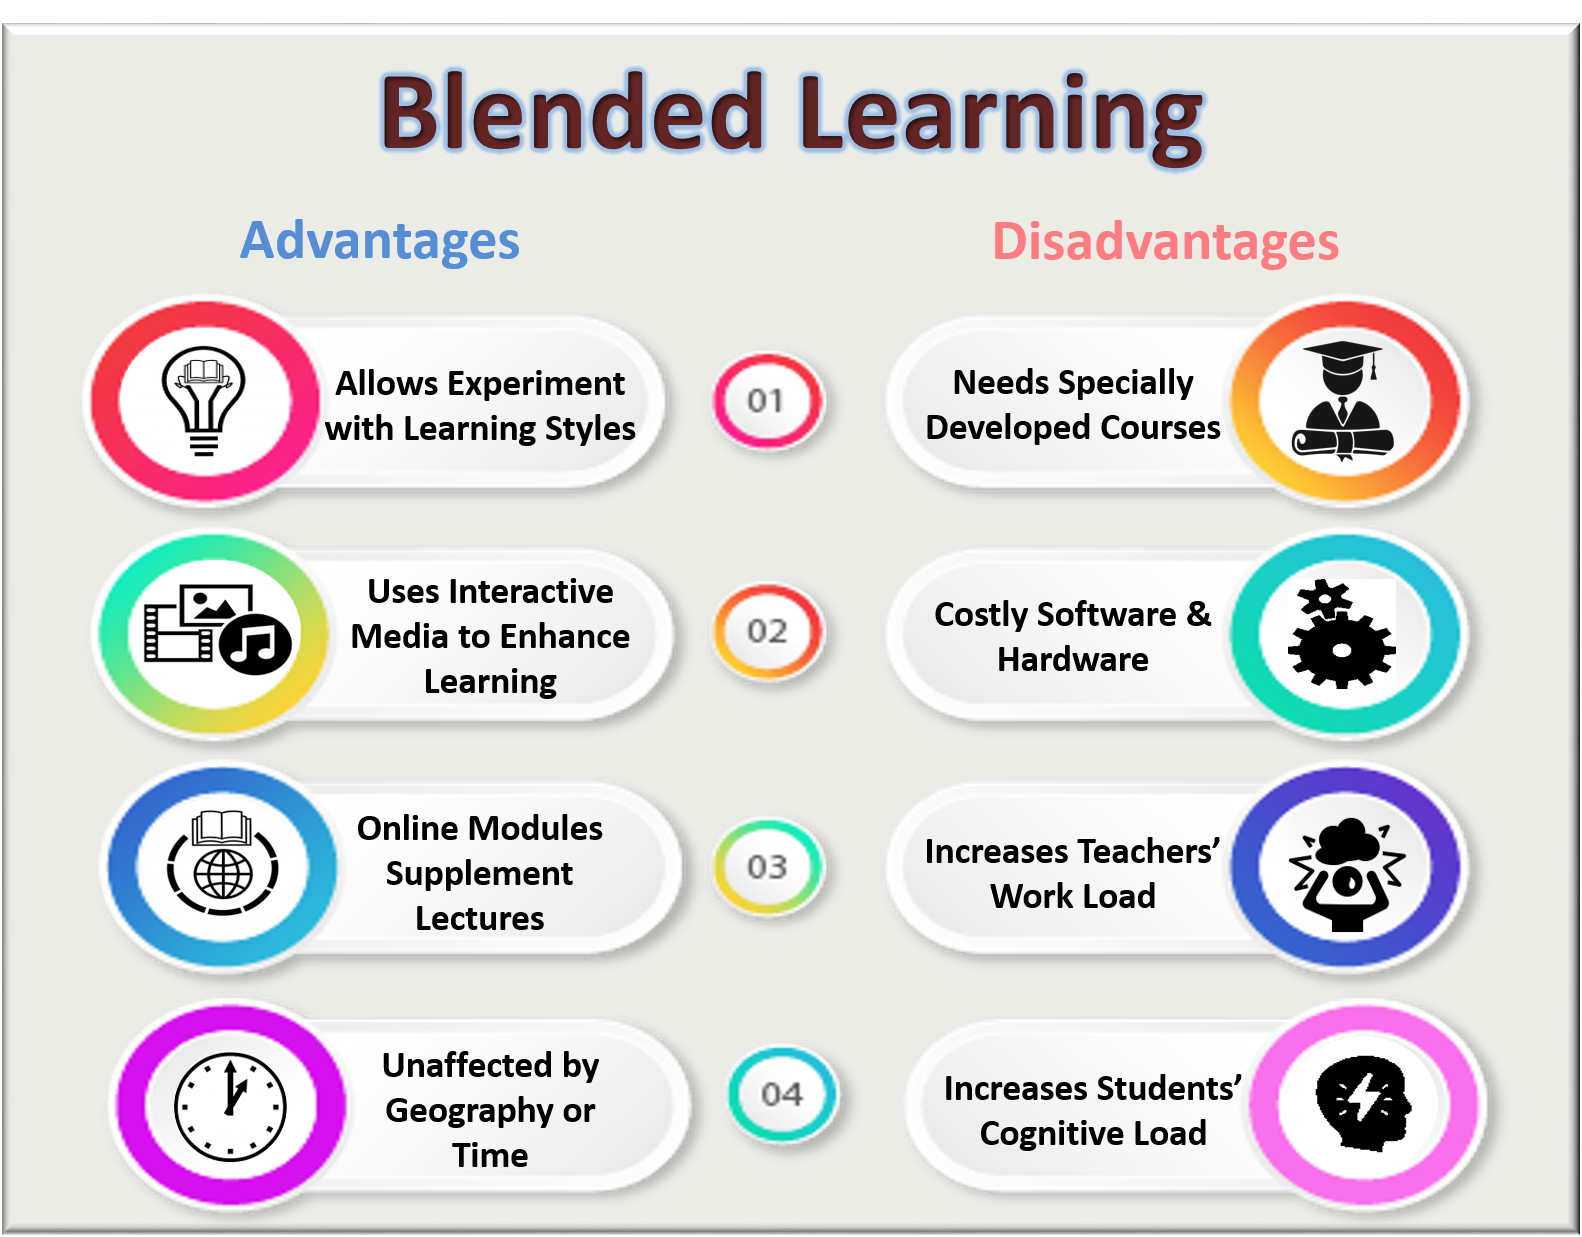 Blended Learning Advantages and Disadvantages